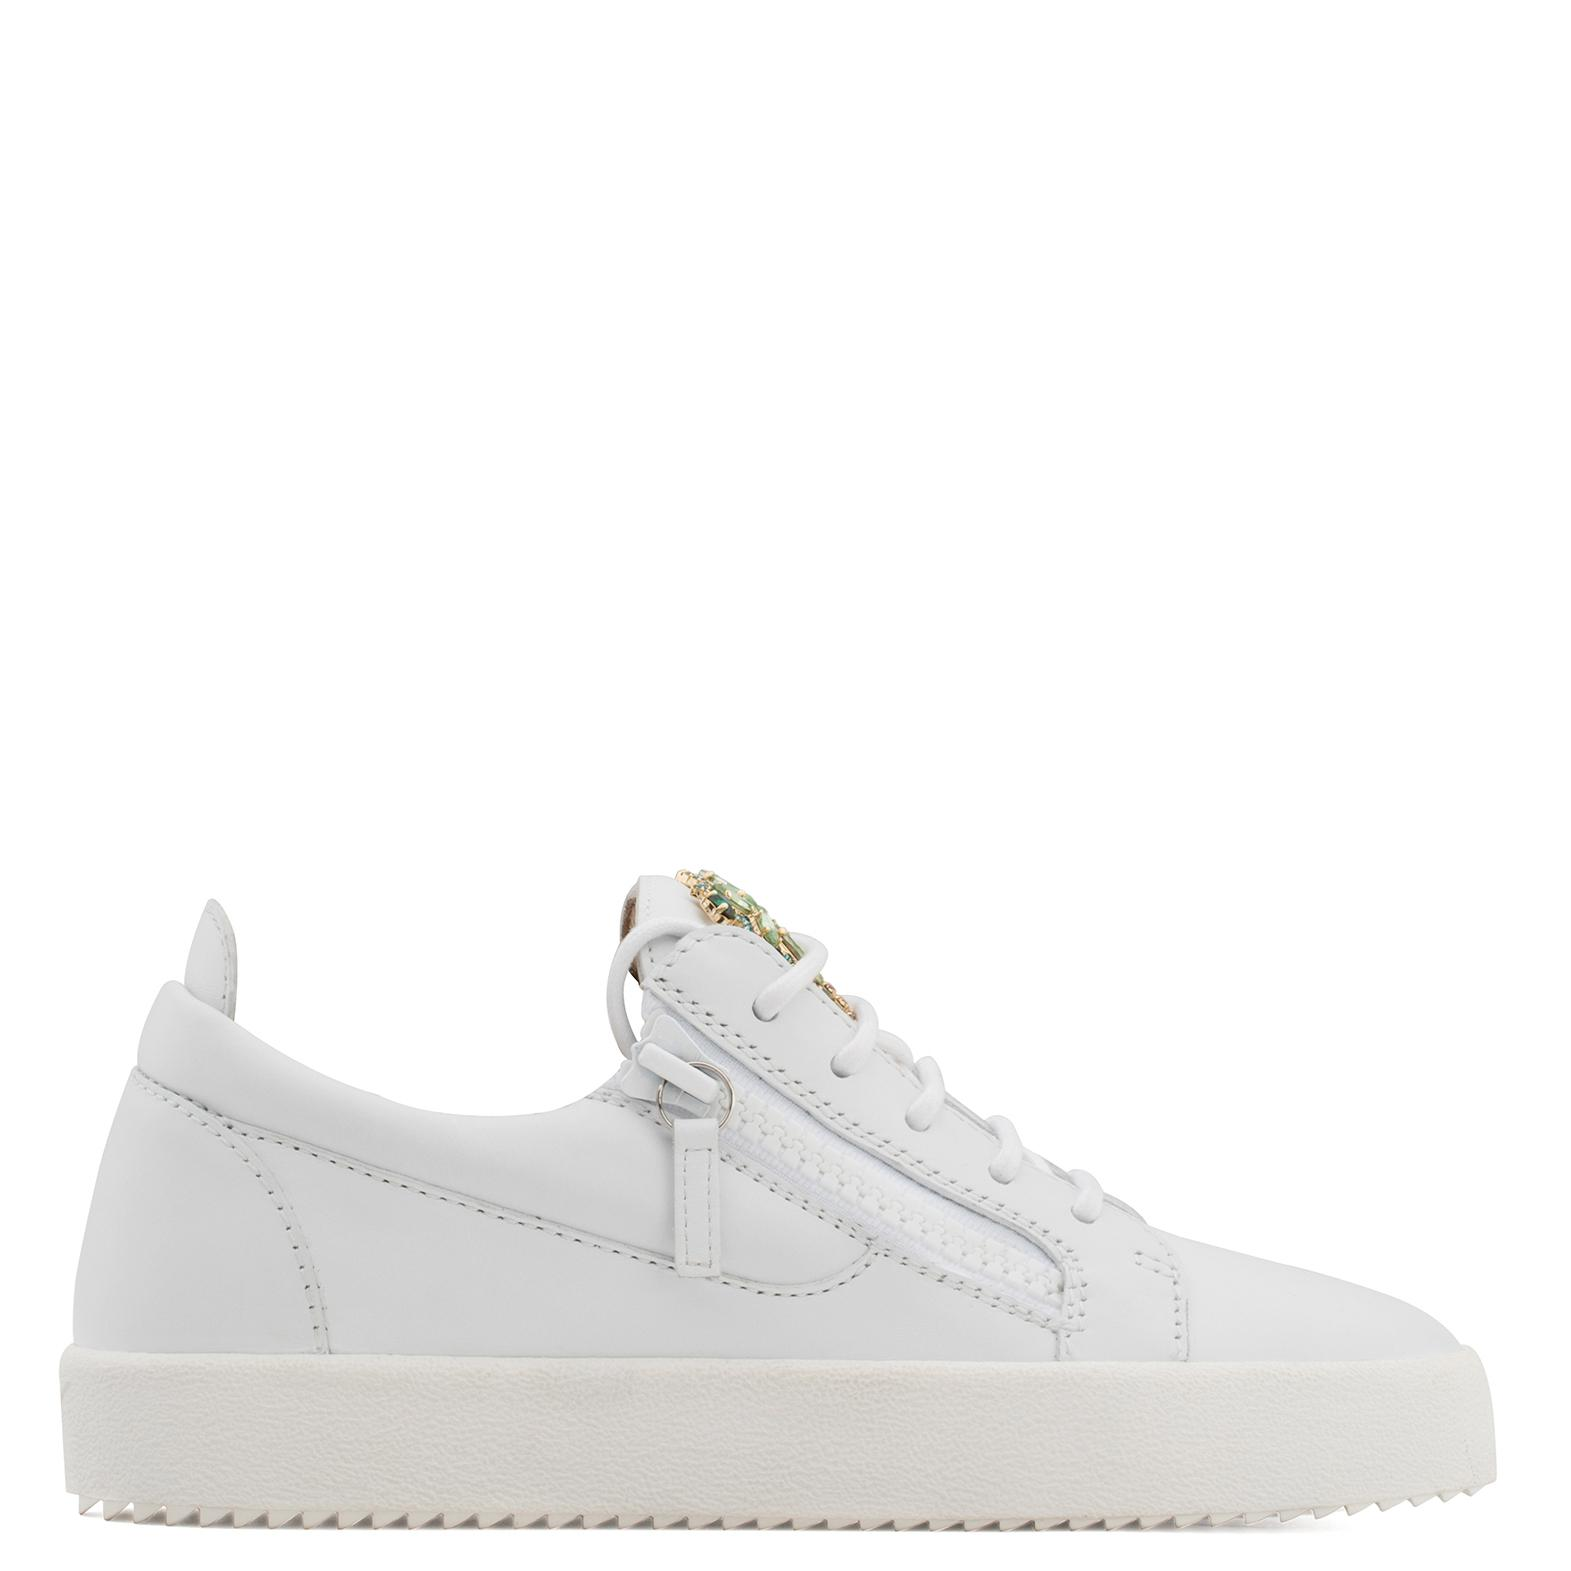 Giuseppe Zanotti Calfskin leather low-top sneaker with crystals palm VENICE BEACH JhouhV8